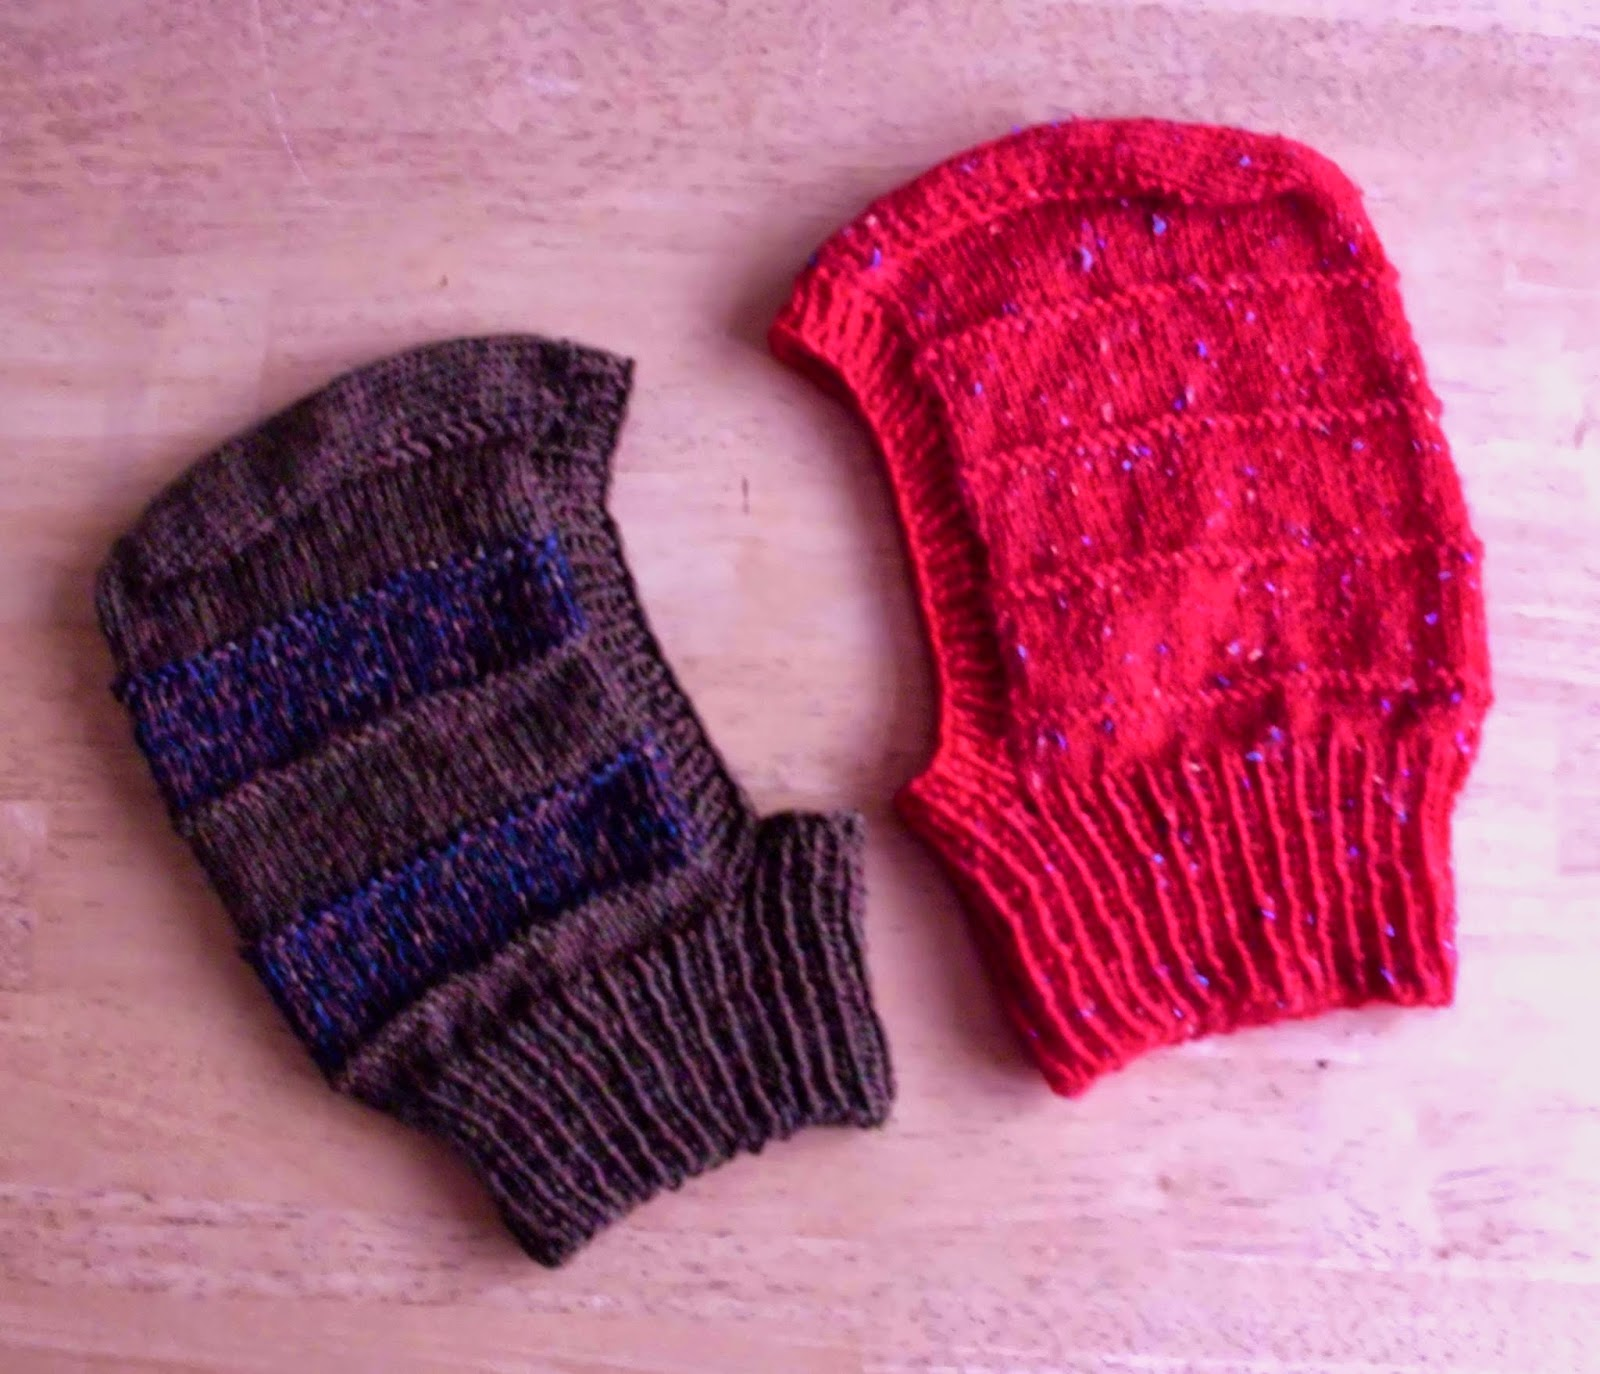 Balaclava Free Knitting Pattern : Great Balls of Wool: Balaclavas and gauge mattters...